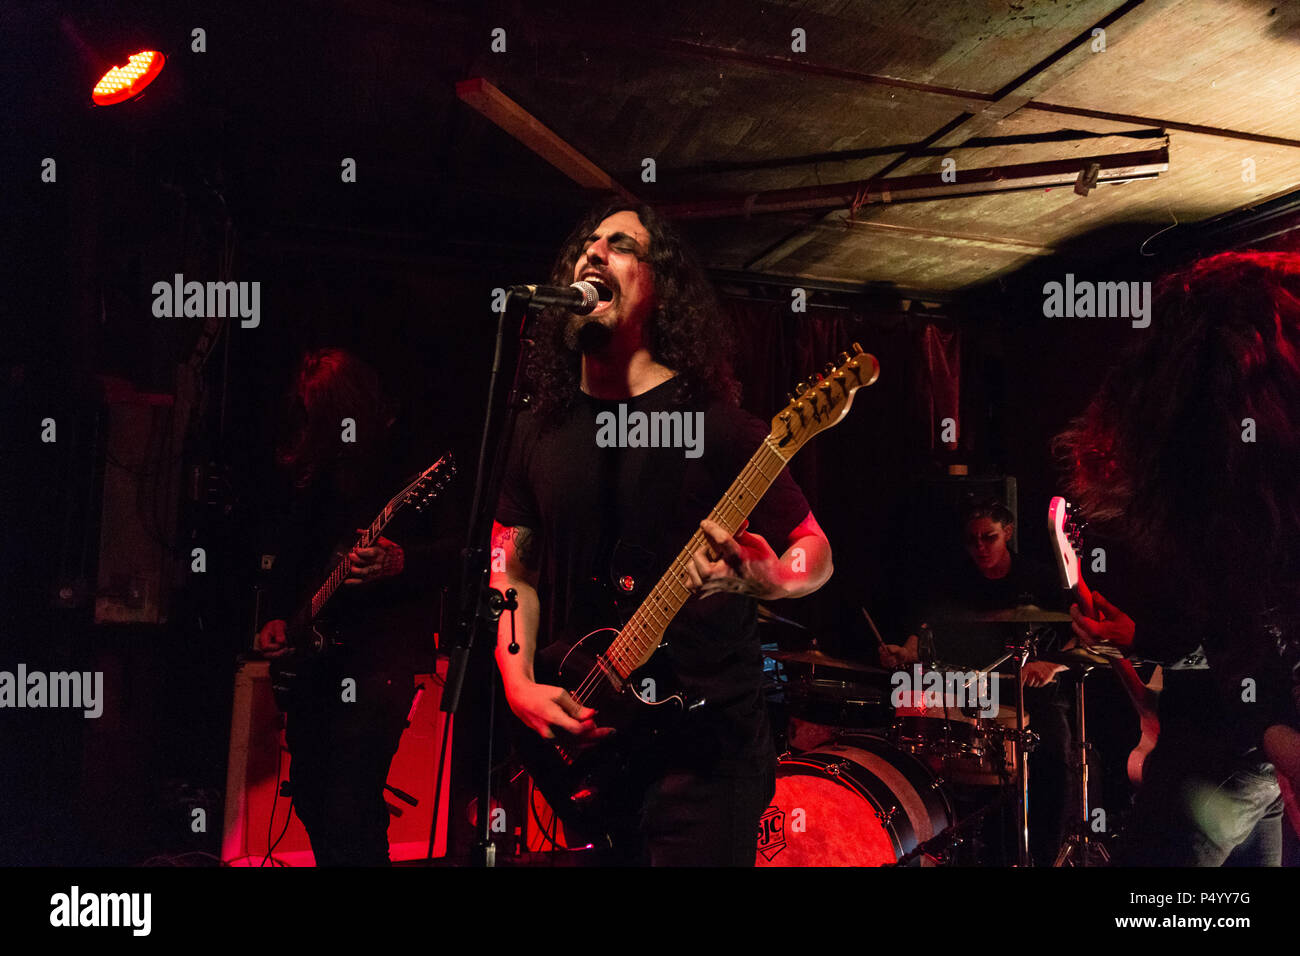 Post-Black Metal band Ghost Bath, performing at Thee Parkside in San Francisco, CA on April 20, 2017. Photo by Geoffrey Smith II - Stock Image